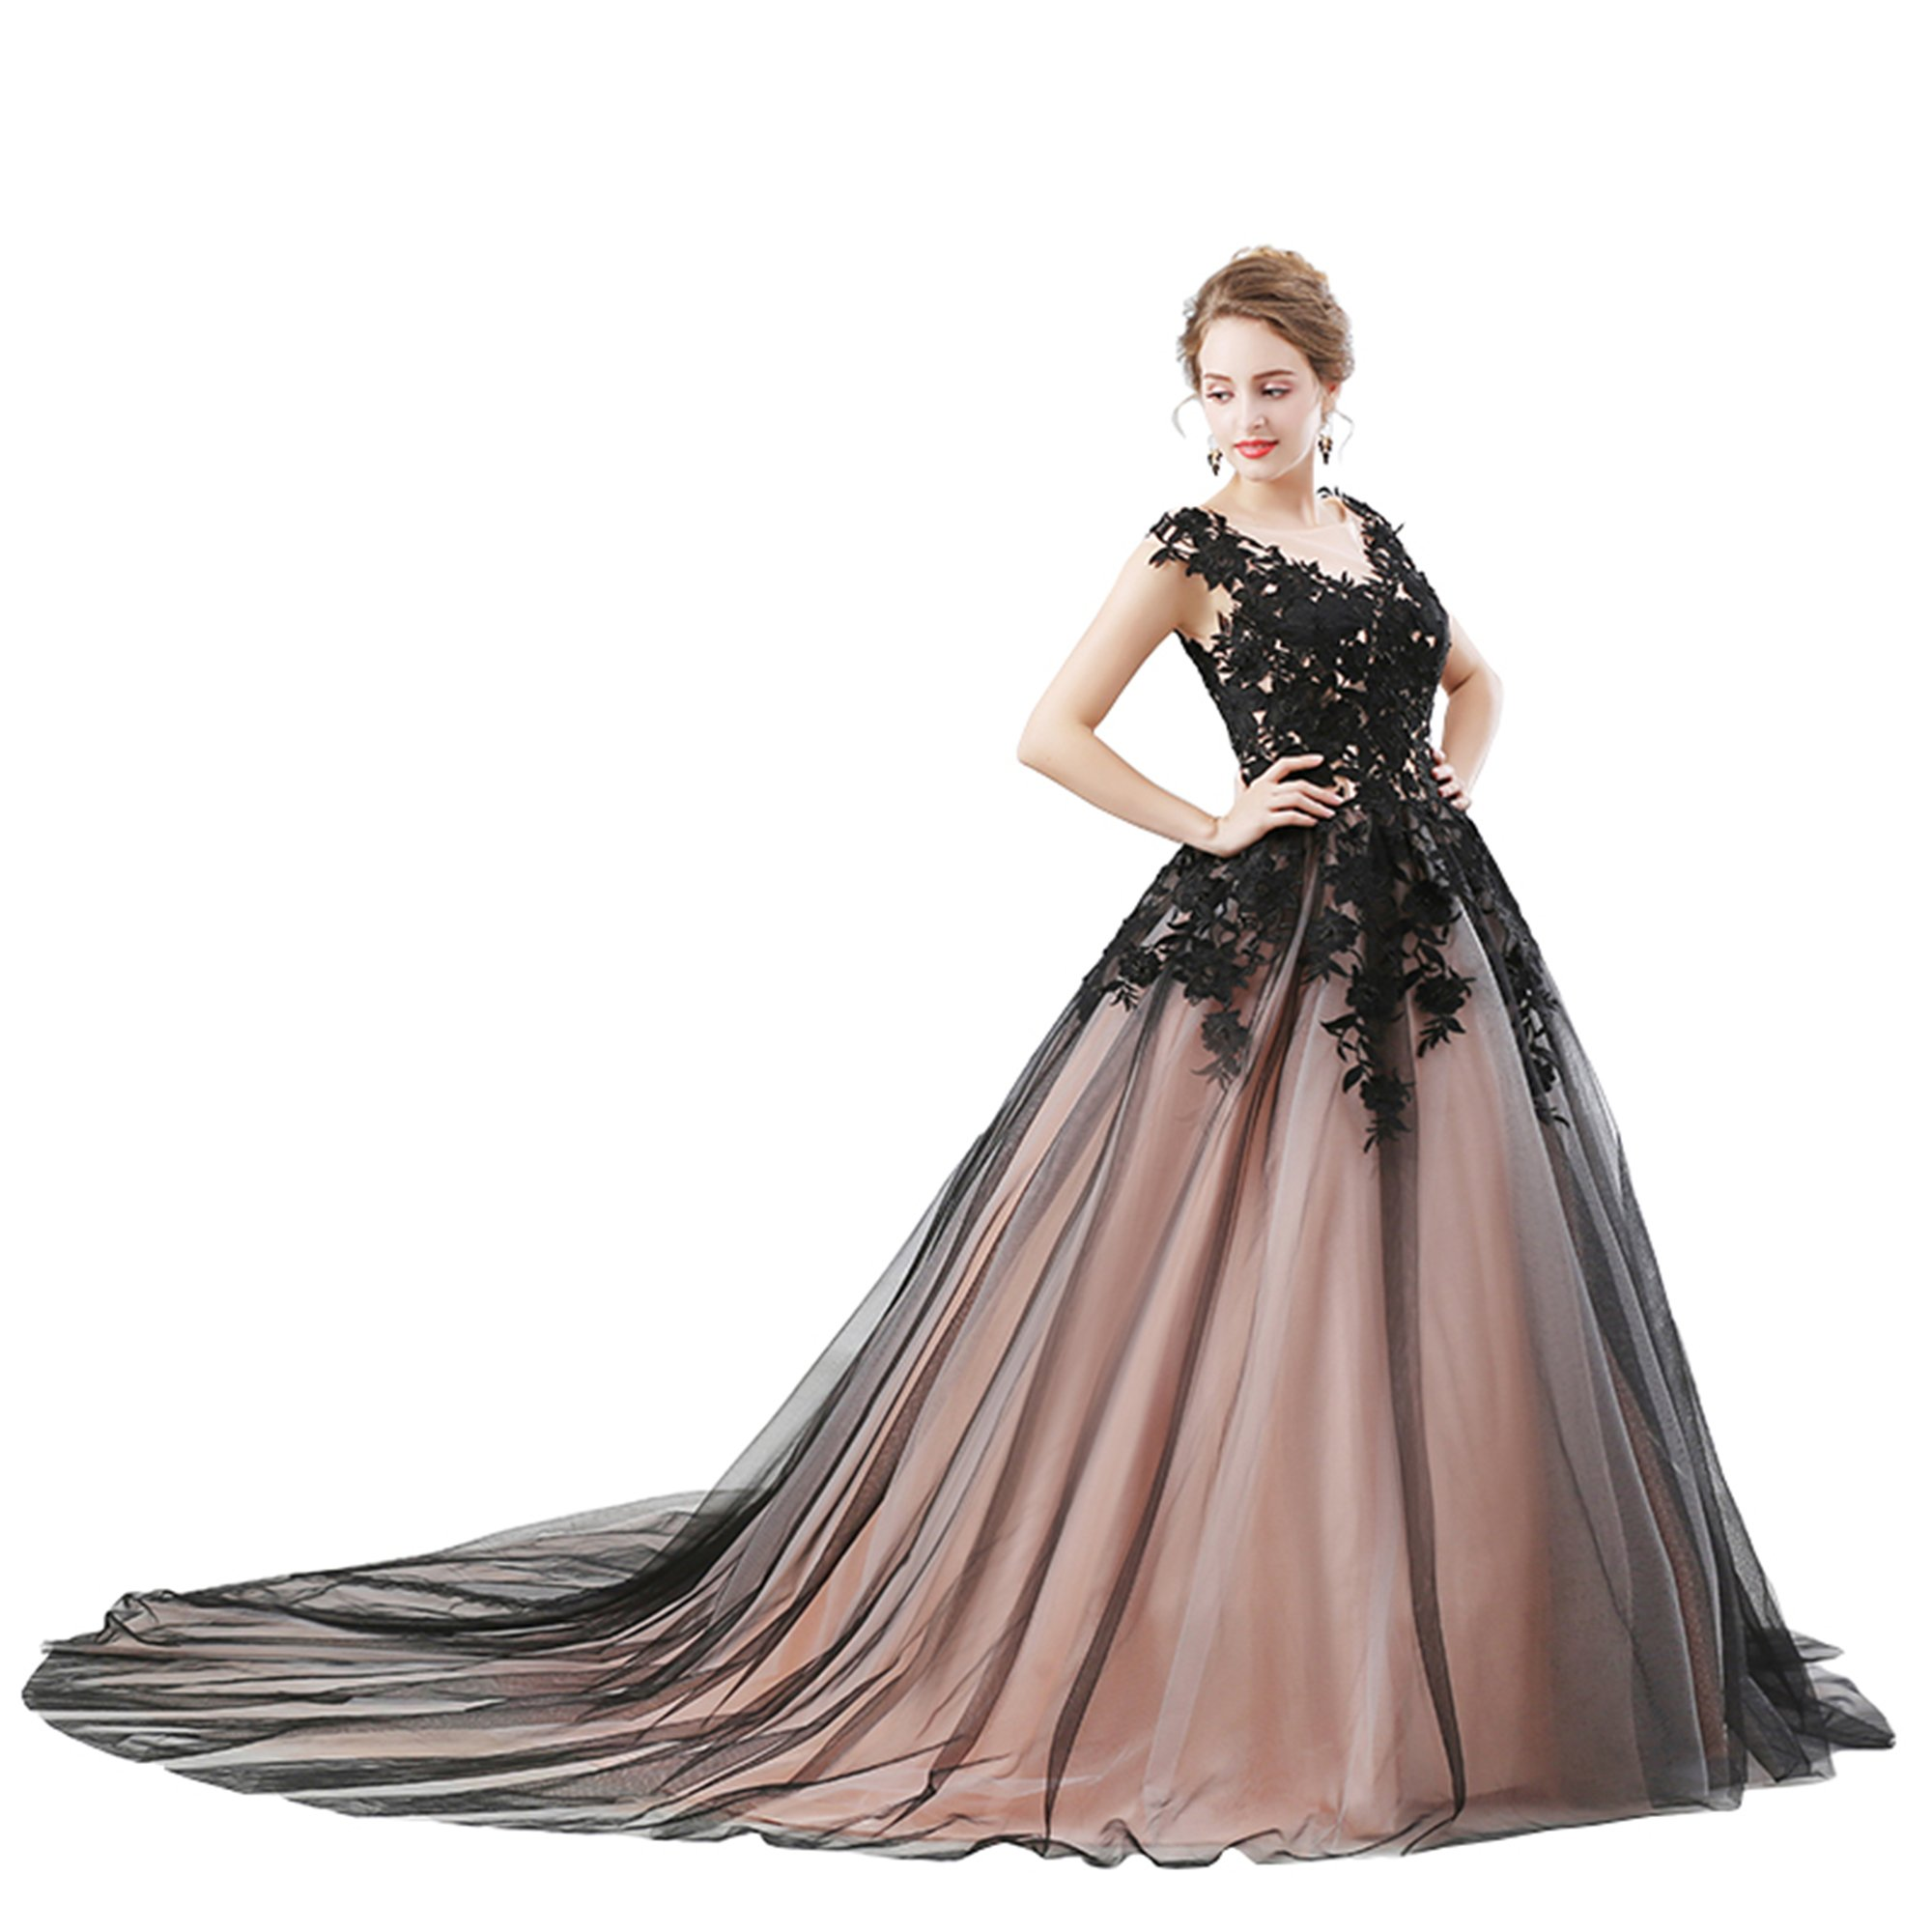 Heartgown Women's Scoop Black Applique Bodice Ball Gown Long Prom Dress With Train As Picture US14